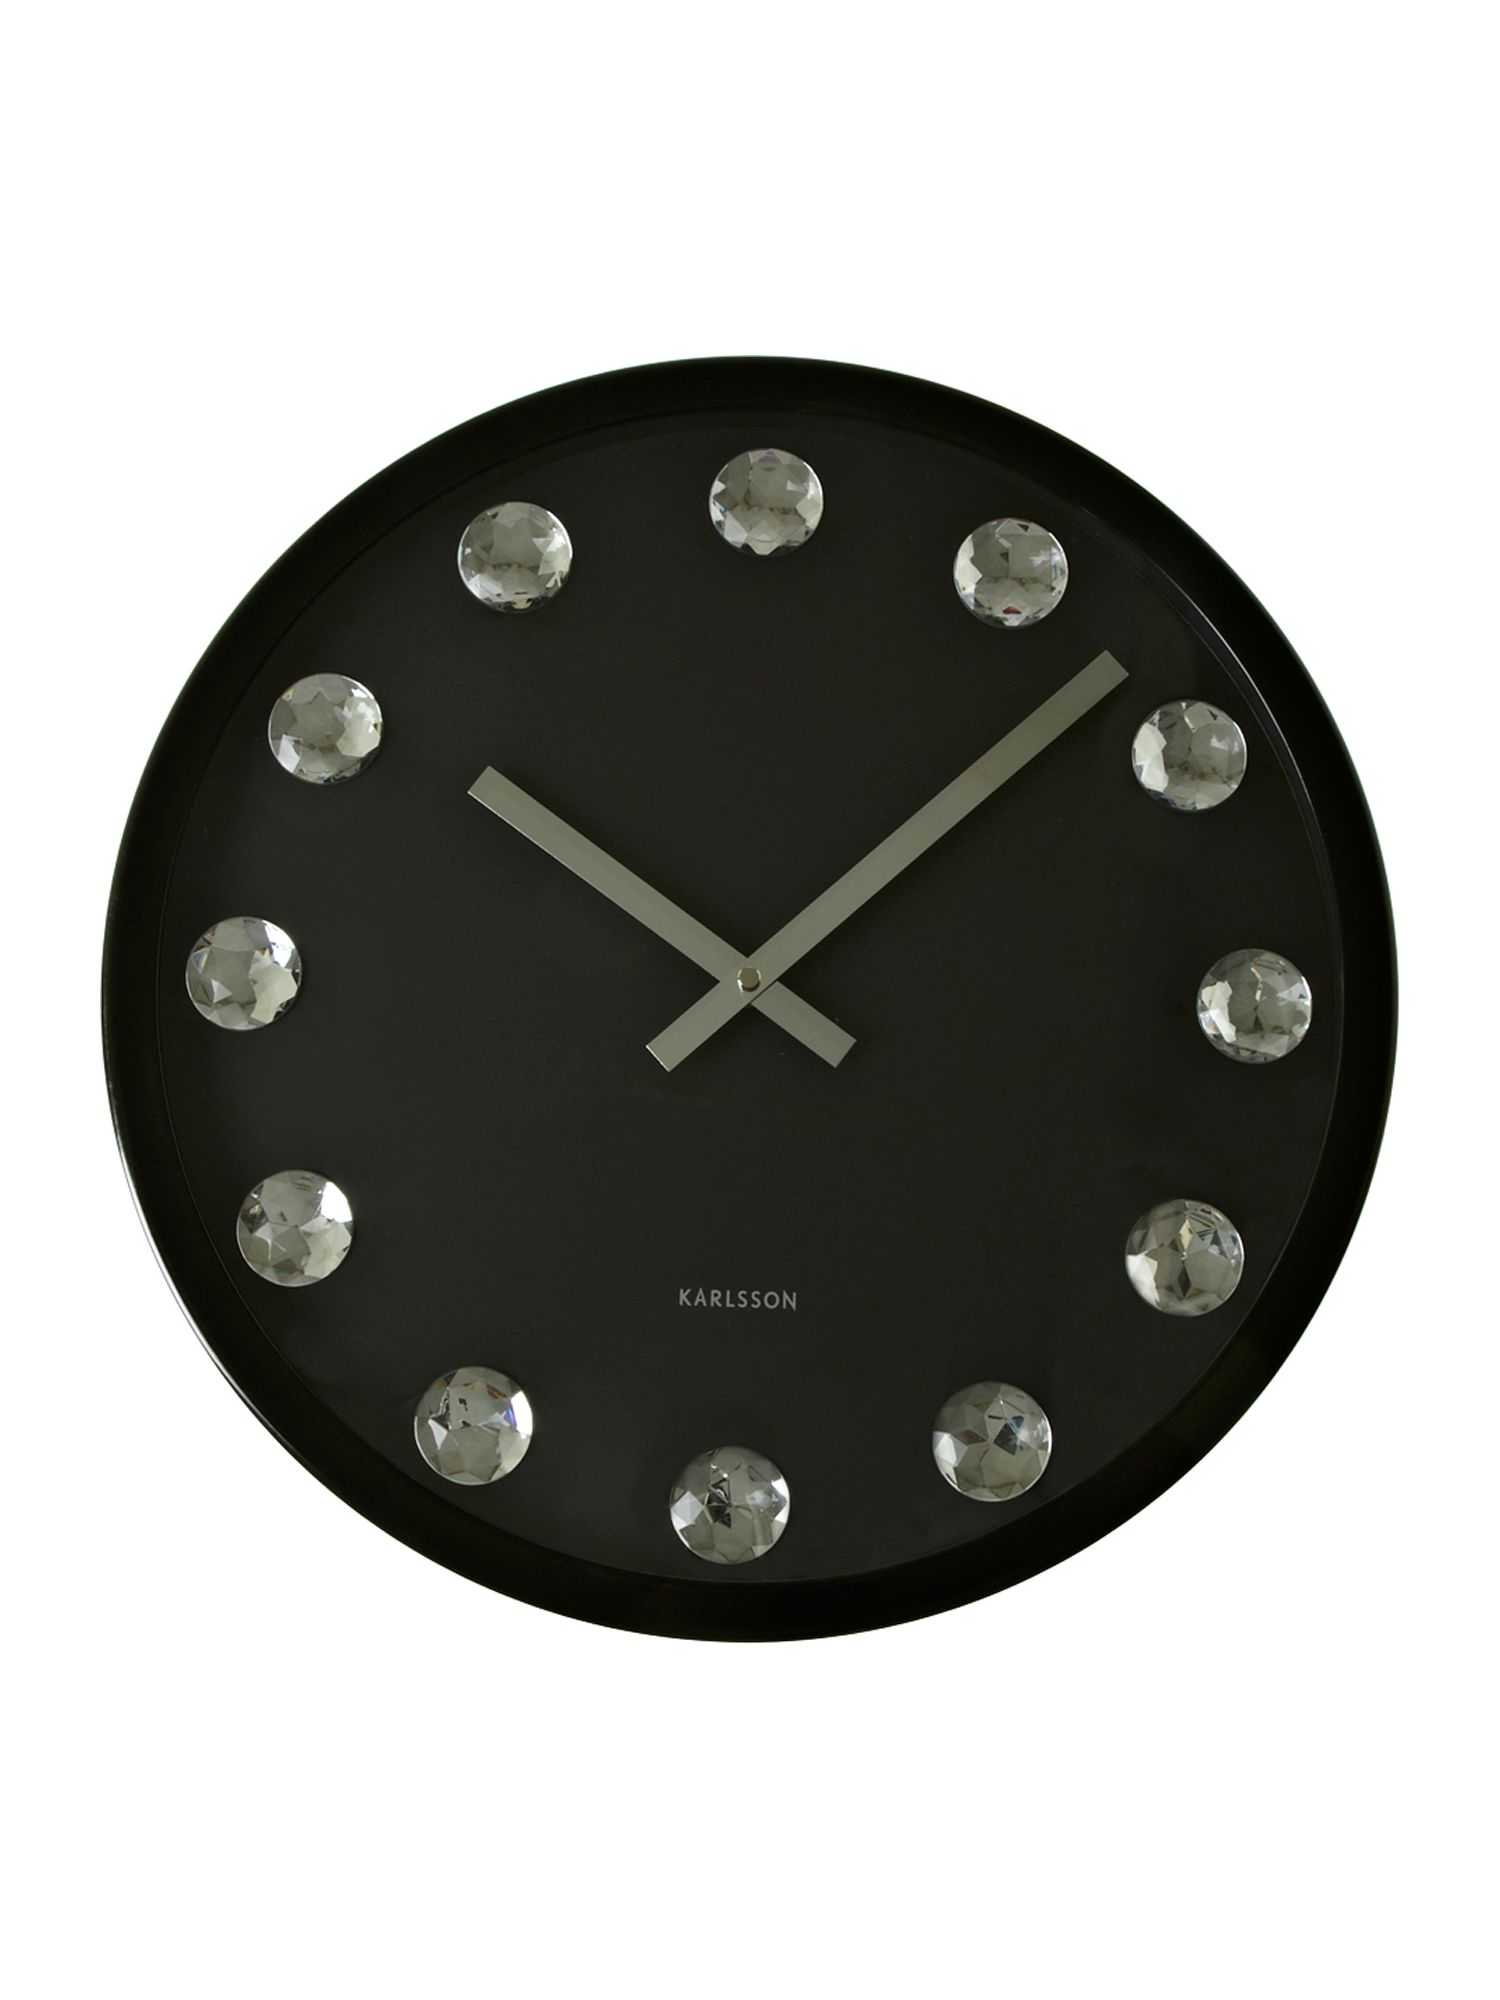 Big diamond steel clock